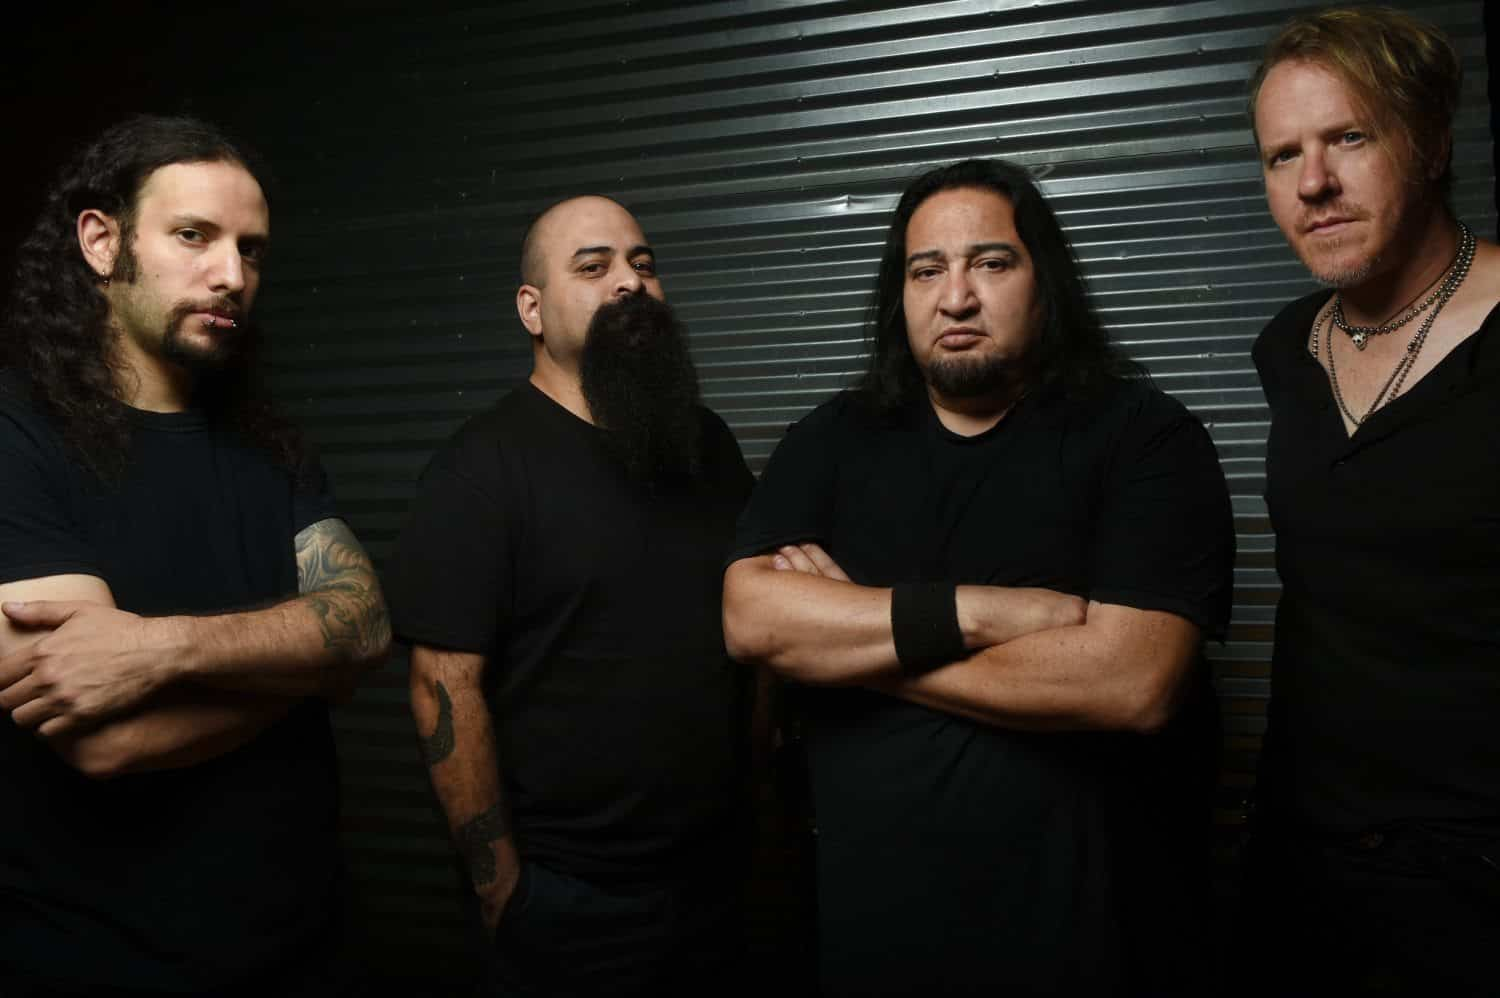 Live Review: Fear Factory @The O2 Forum, London (13/12/15)